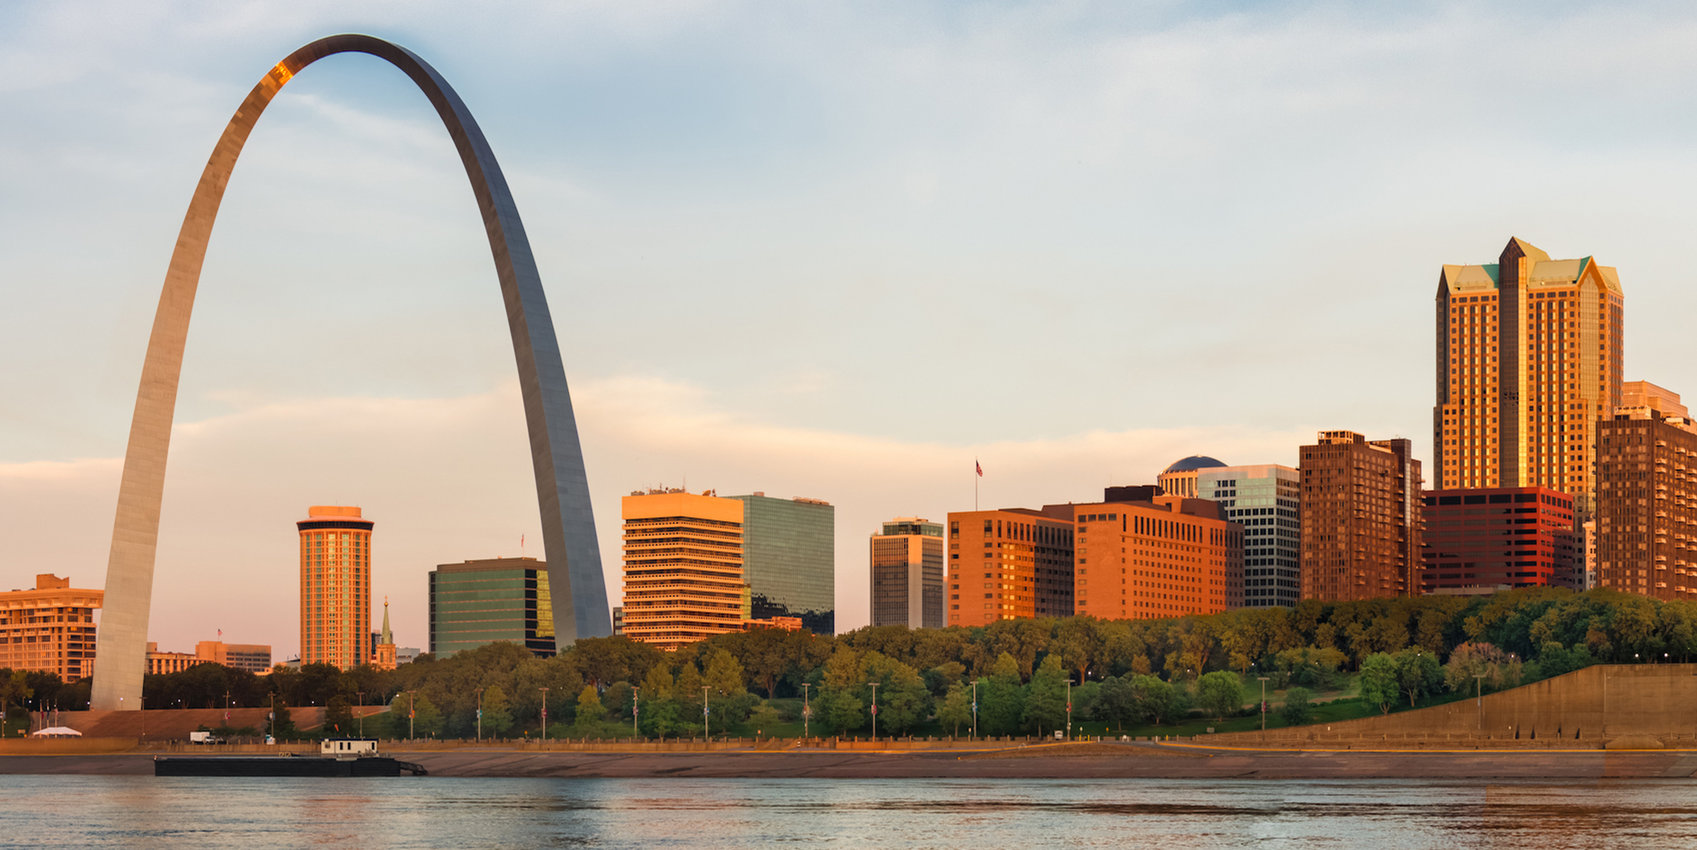 rsz_mo_st_louis_with_the_gateway_arch_and_eads_bridge_shutterstock_114638545-1.jpg